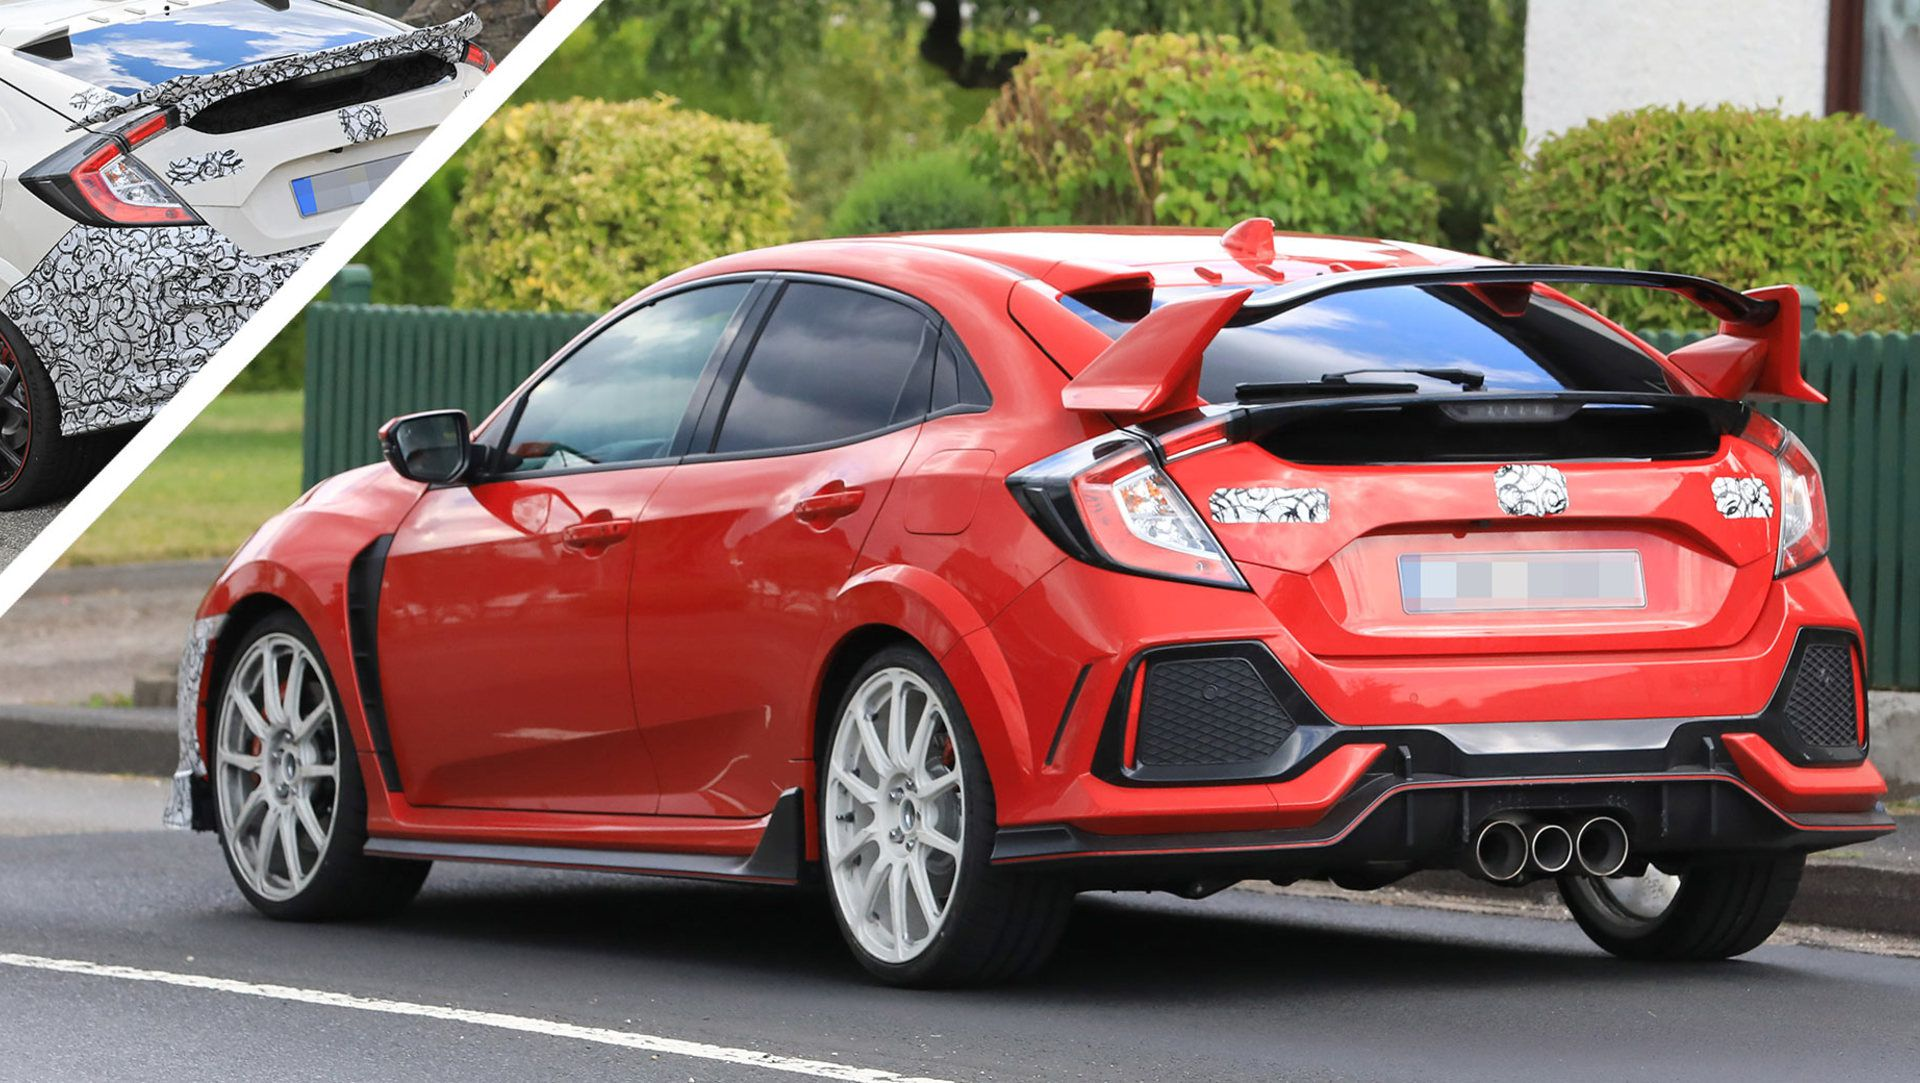 2019 Honda Civic Type R Facelift Spied With New Pers And Both Small Large Rear